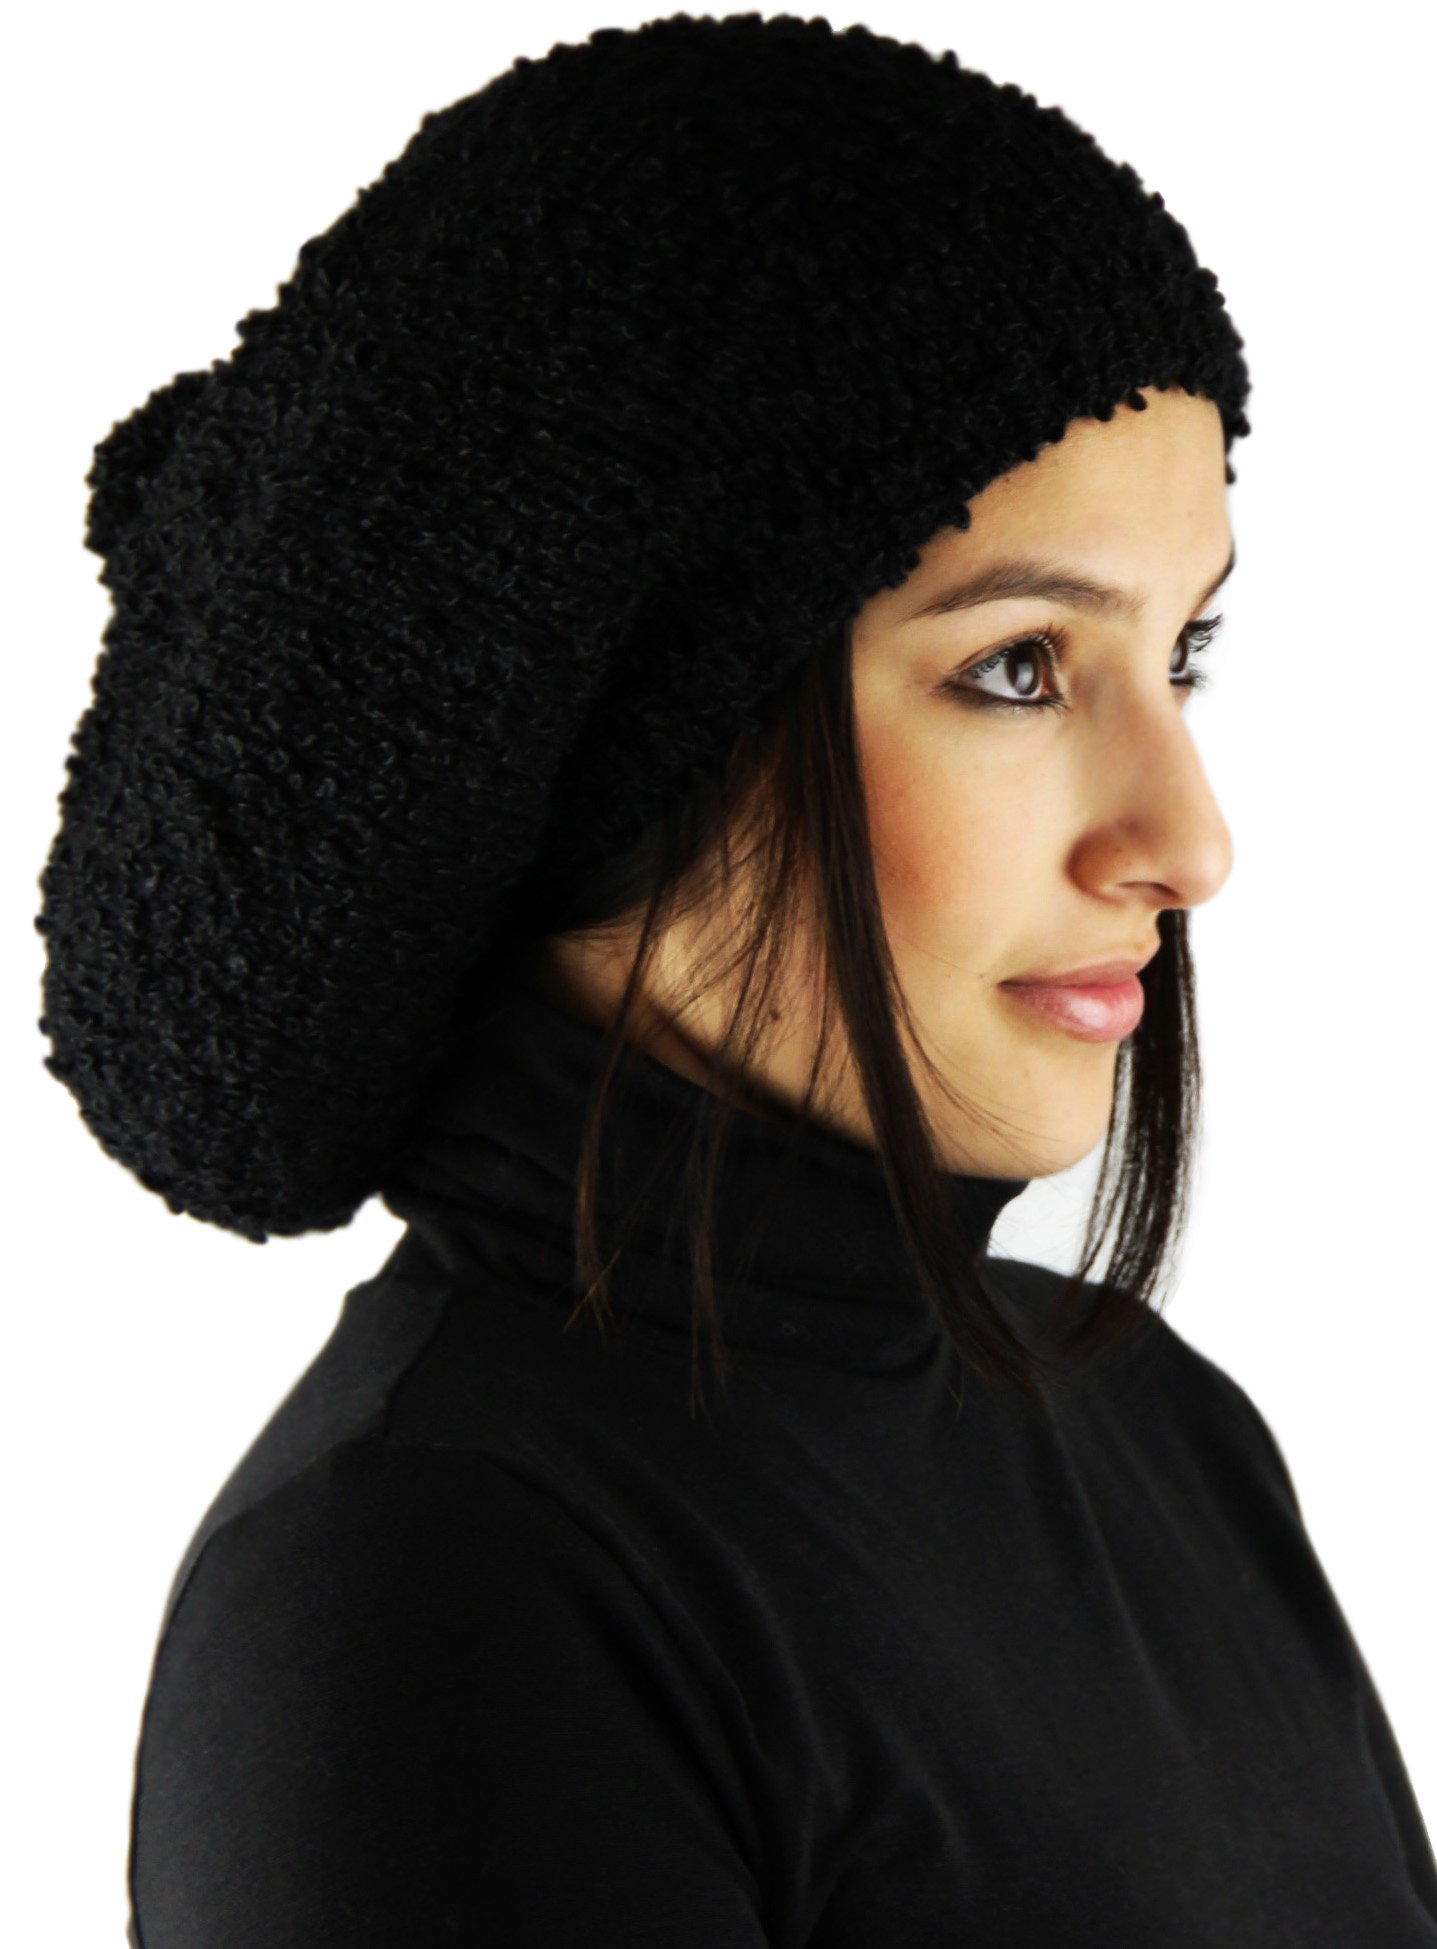 Knitted 100% by Hand ALPACA Rasta Hat - Black Luxury II (MEDIUM)